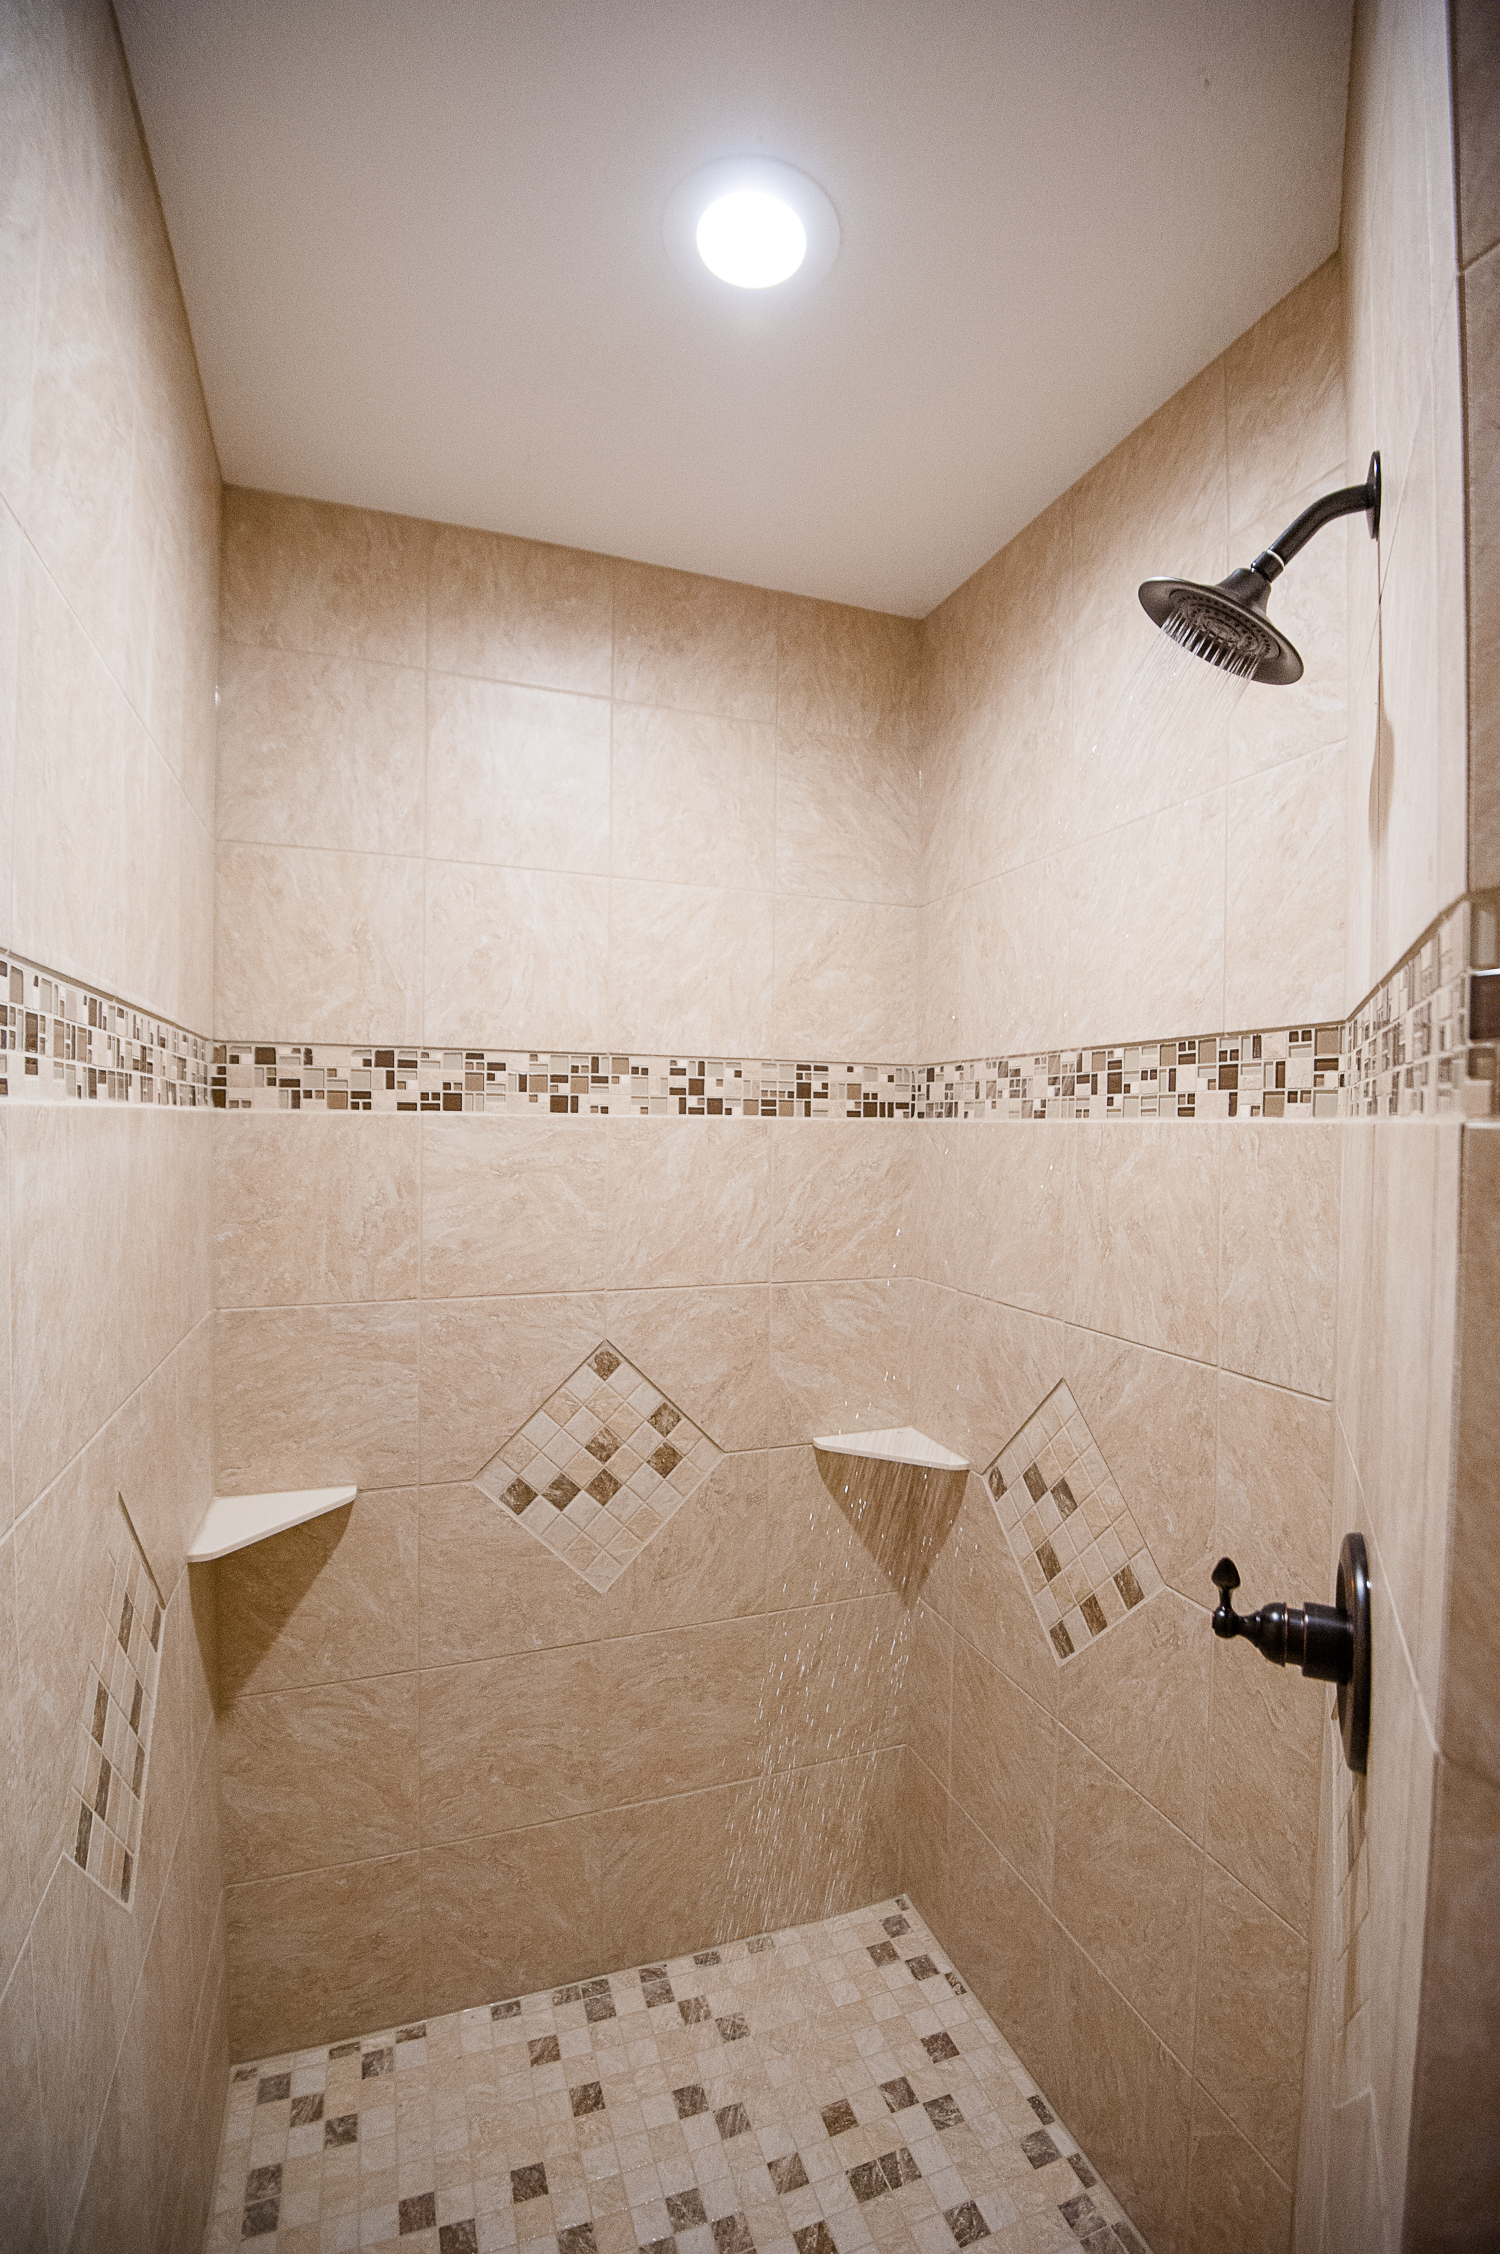 19 - Hoover house shower Satori 2014.jpg